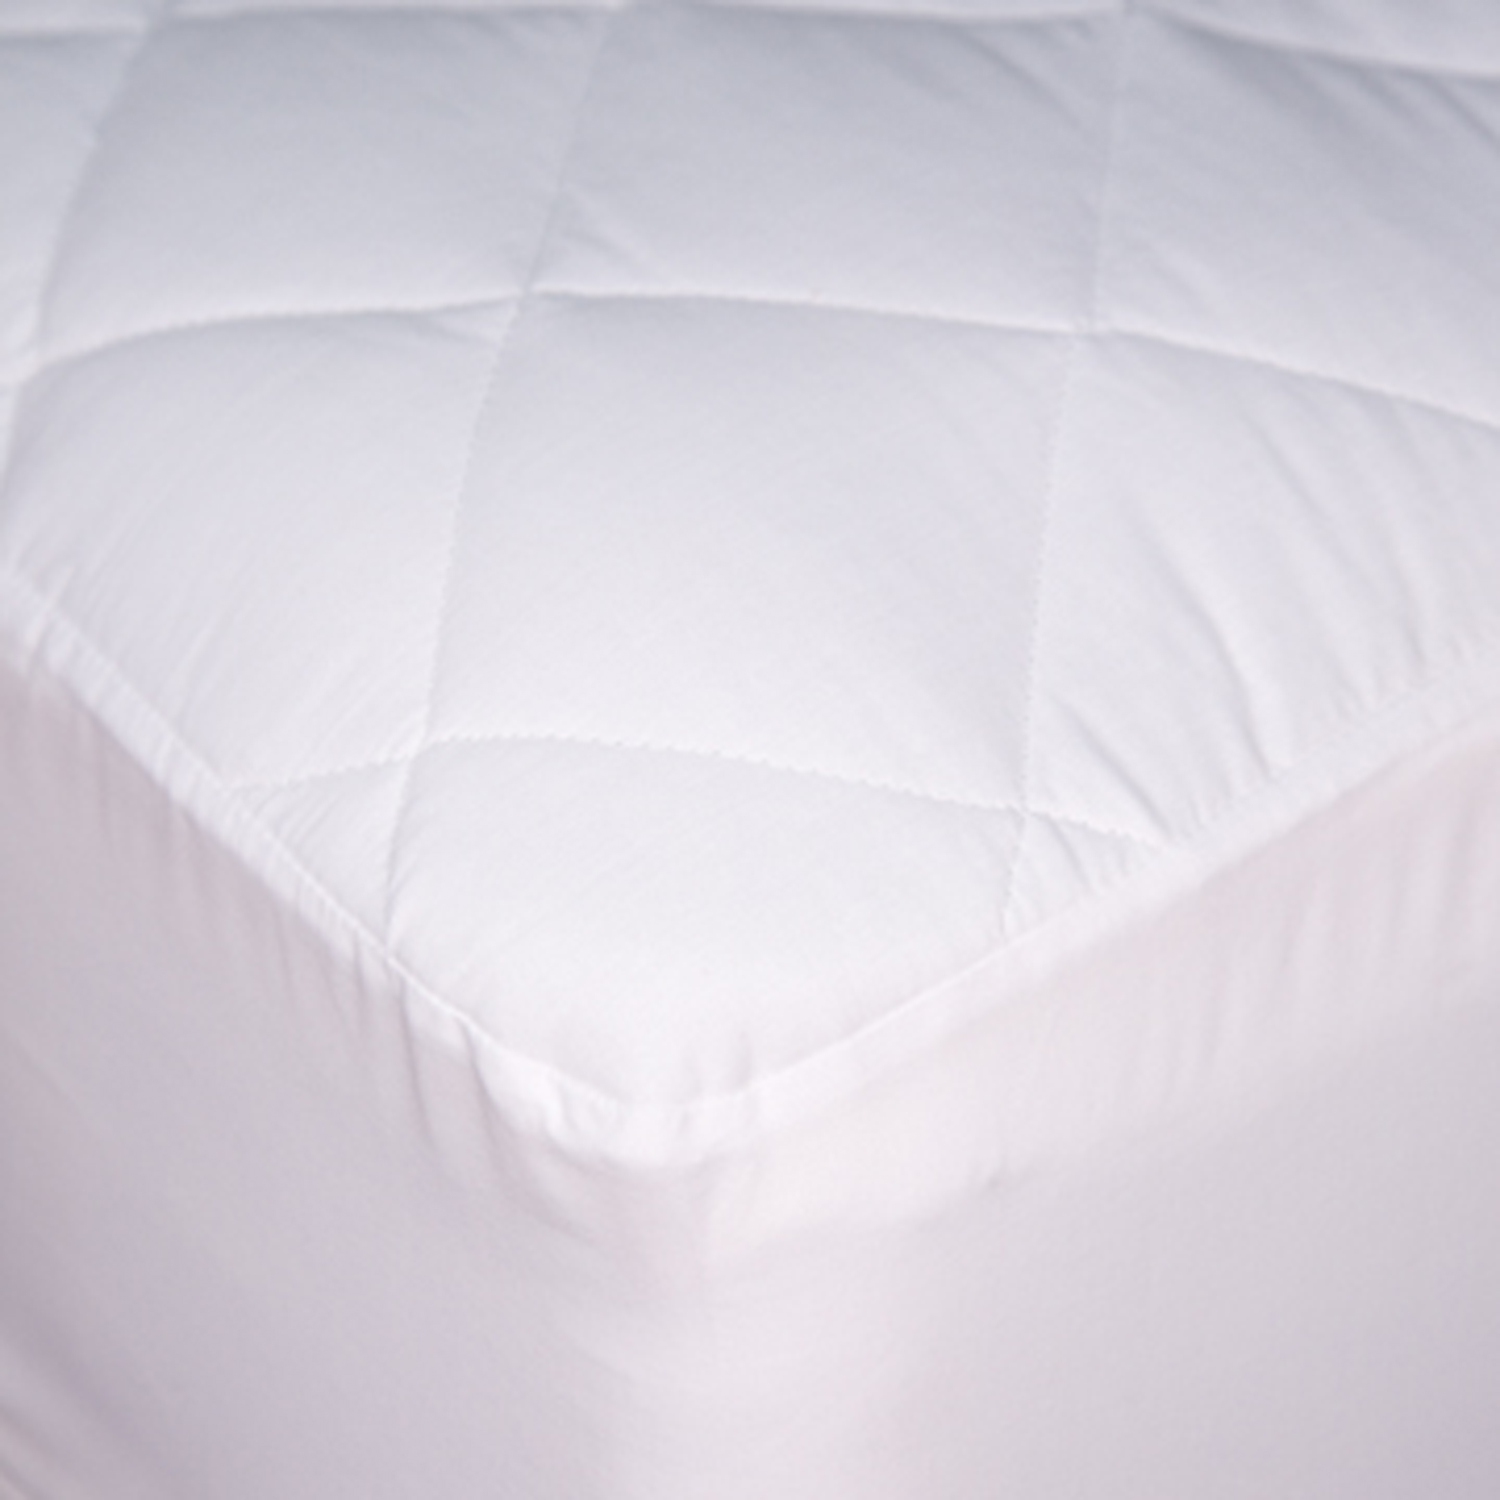 Full XL Fitted Mattress Pad, Quilted | PV Suppliers : quilted mattress pads - Adamdwight.com